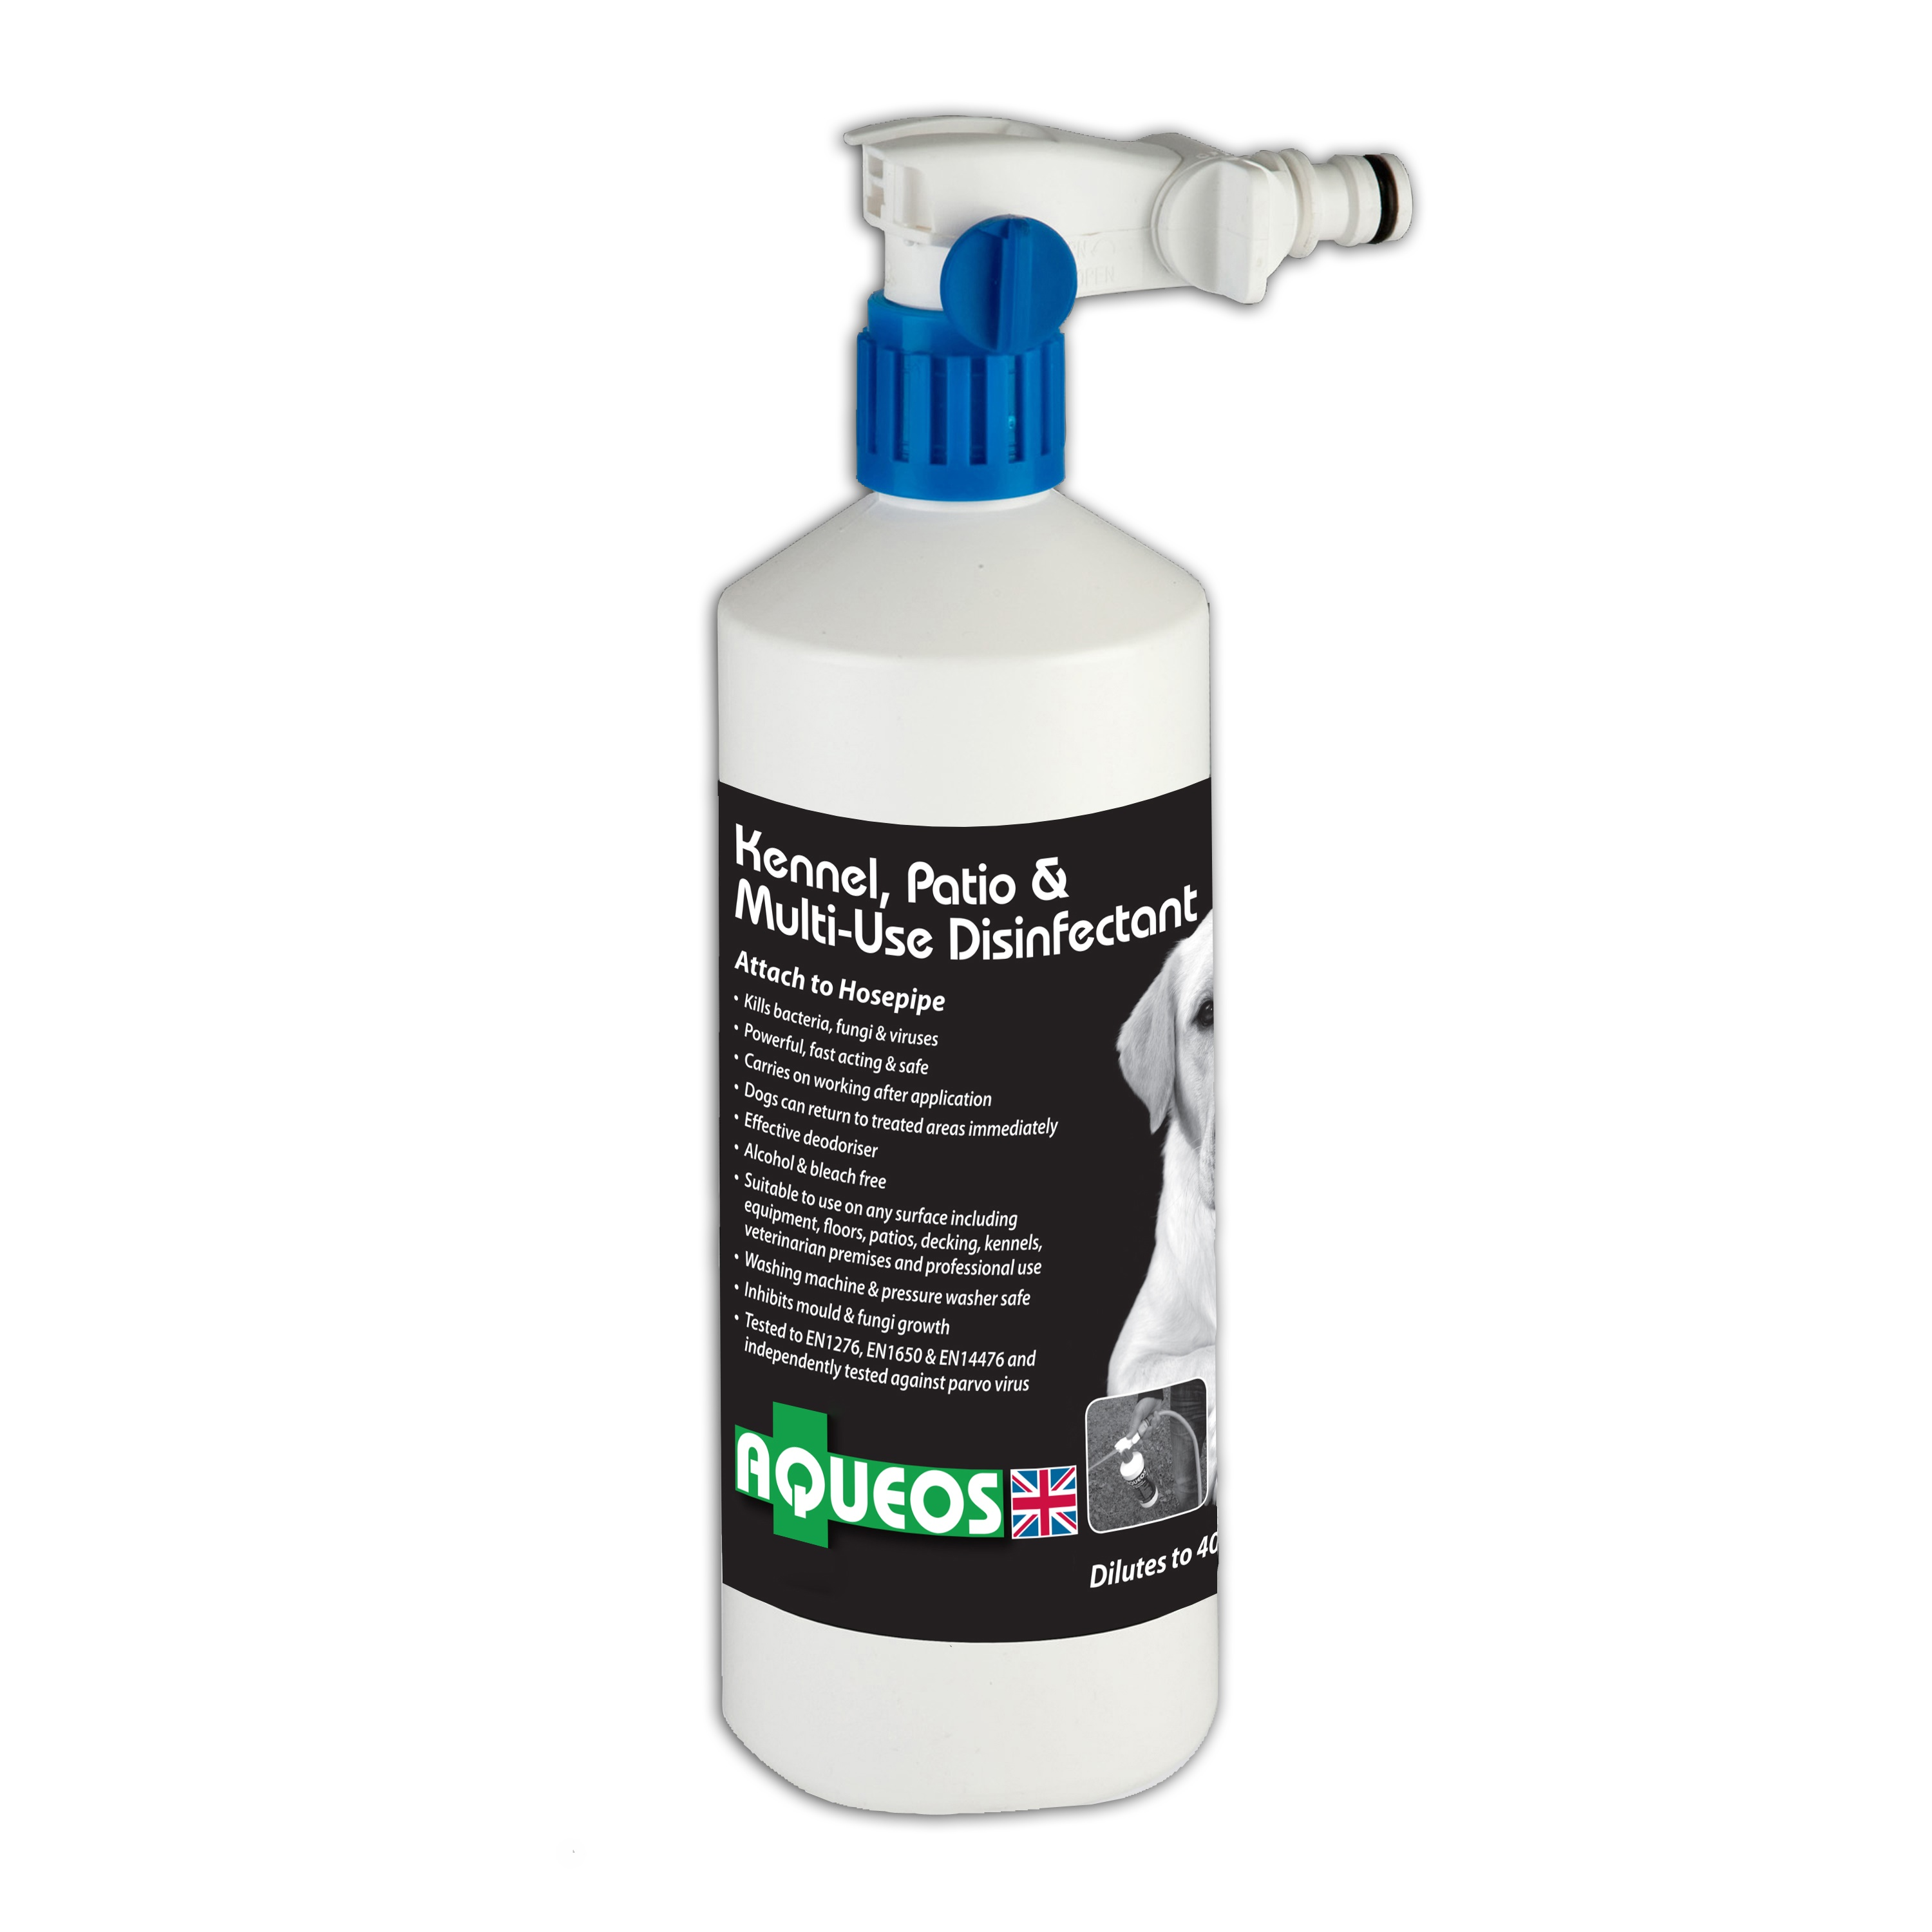 Aqueos Kennel and Patio Disinfectant